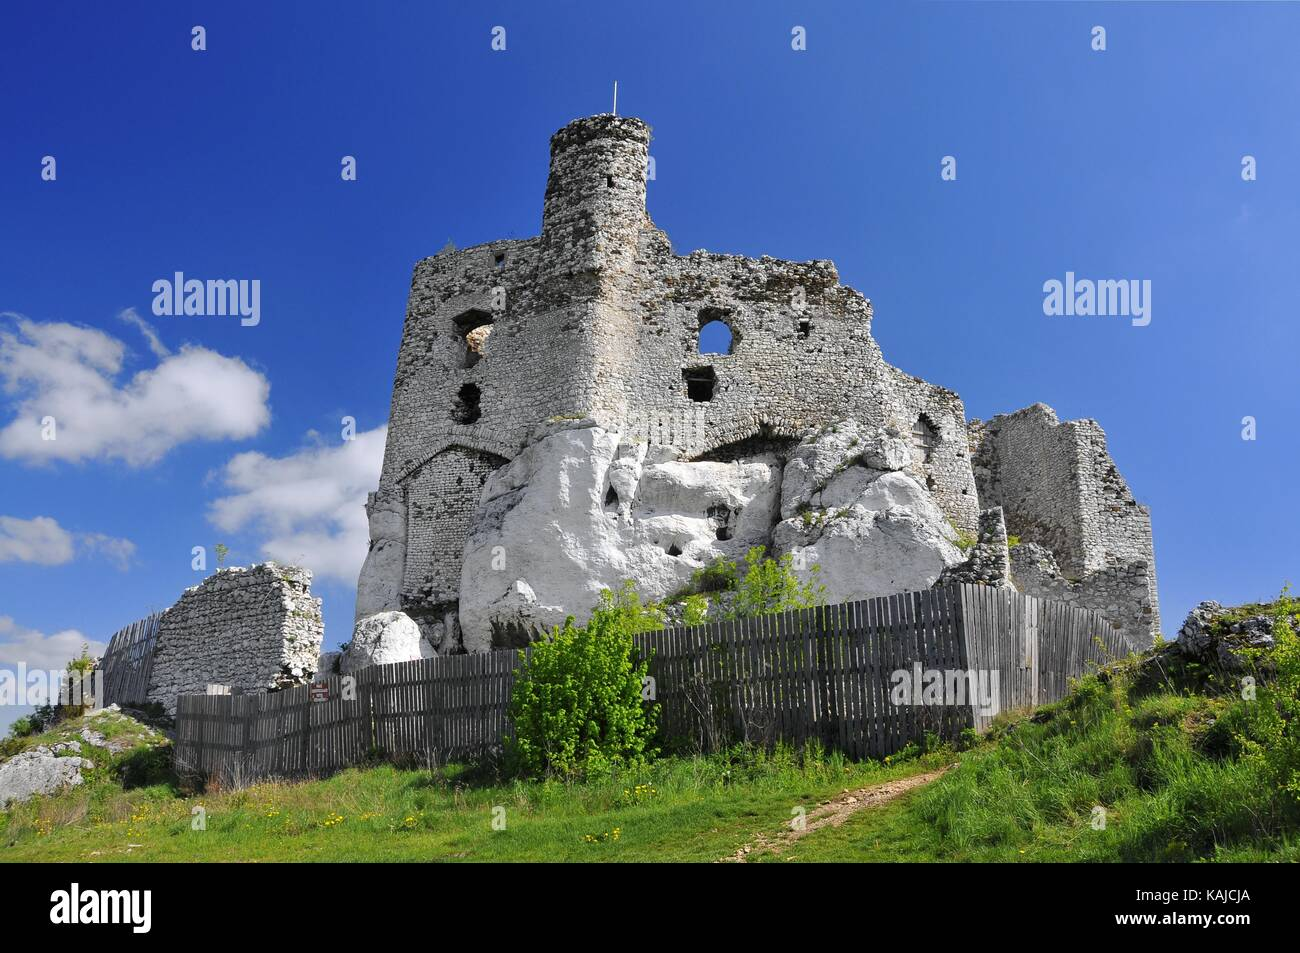 Ruins Of 14th Century Castle Located In The Mirow Village Silesian Voivodeship Poland